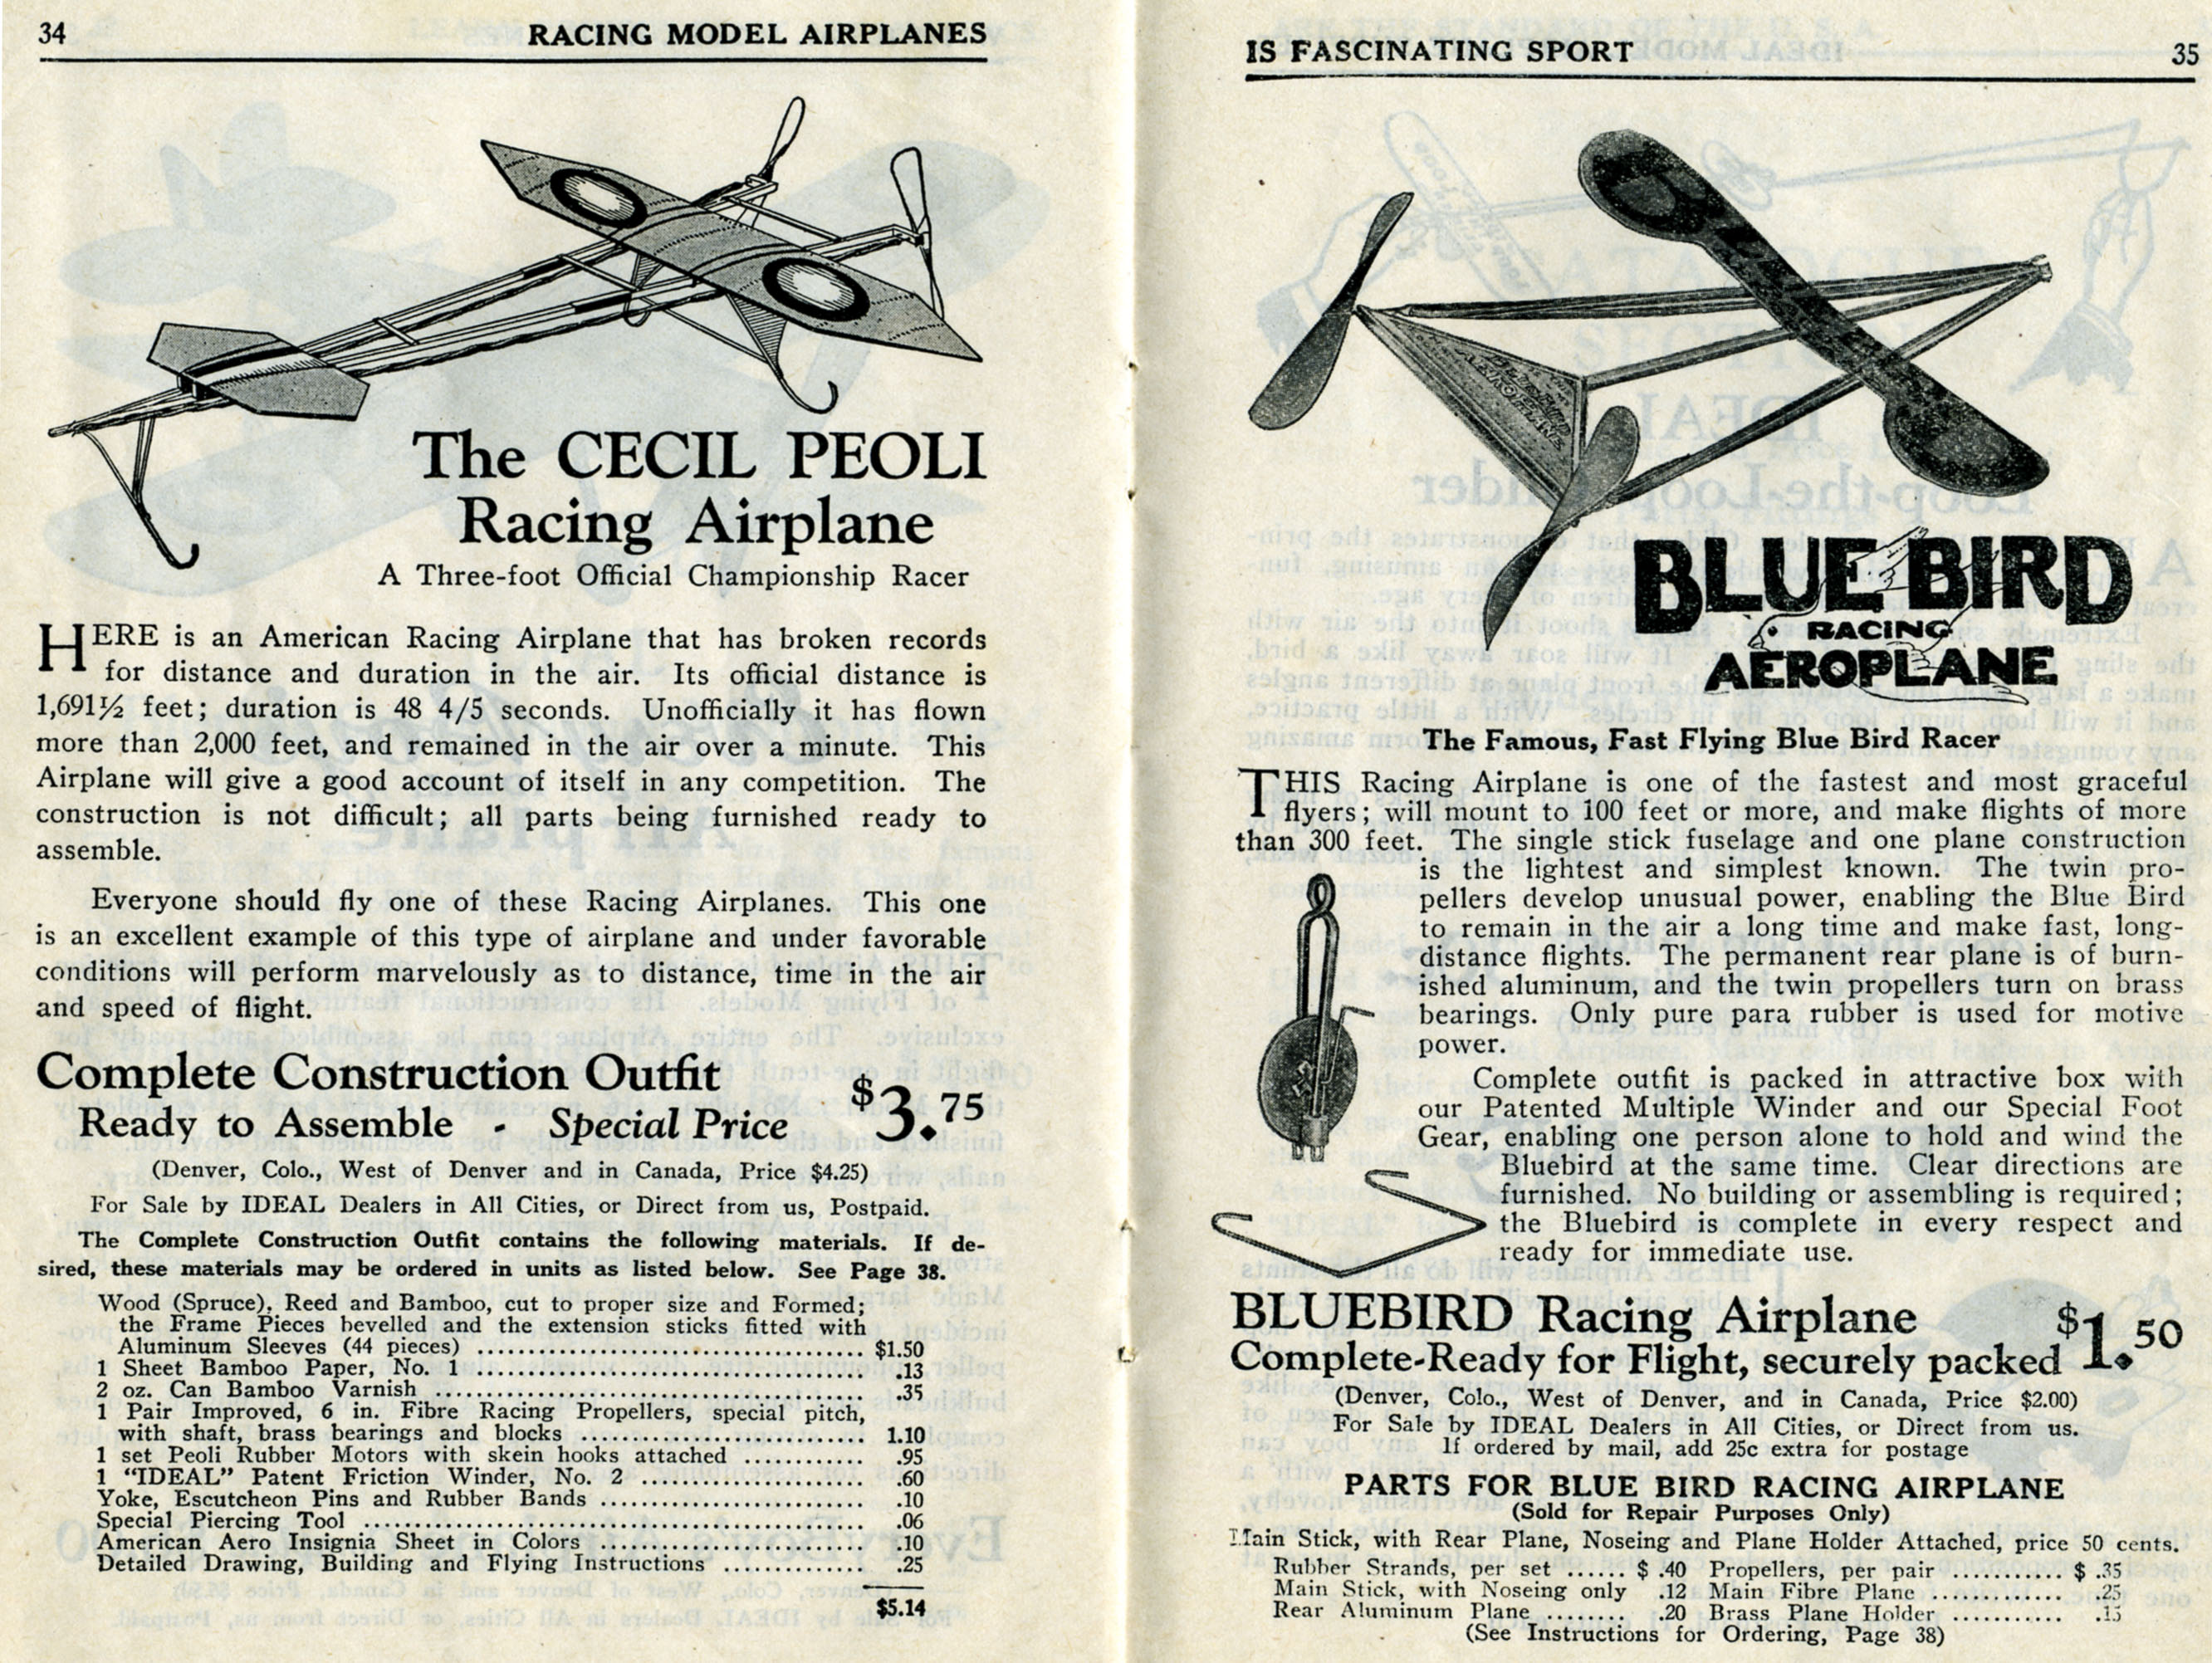 Catalog, How to Build and Fly Model Airplanes: Catalogue of Ideal Supplies for Model Airplane Builders, pages 34 and 34, 1928. (Source: National Model Aviation Museum Archives, Collection #0043)